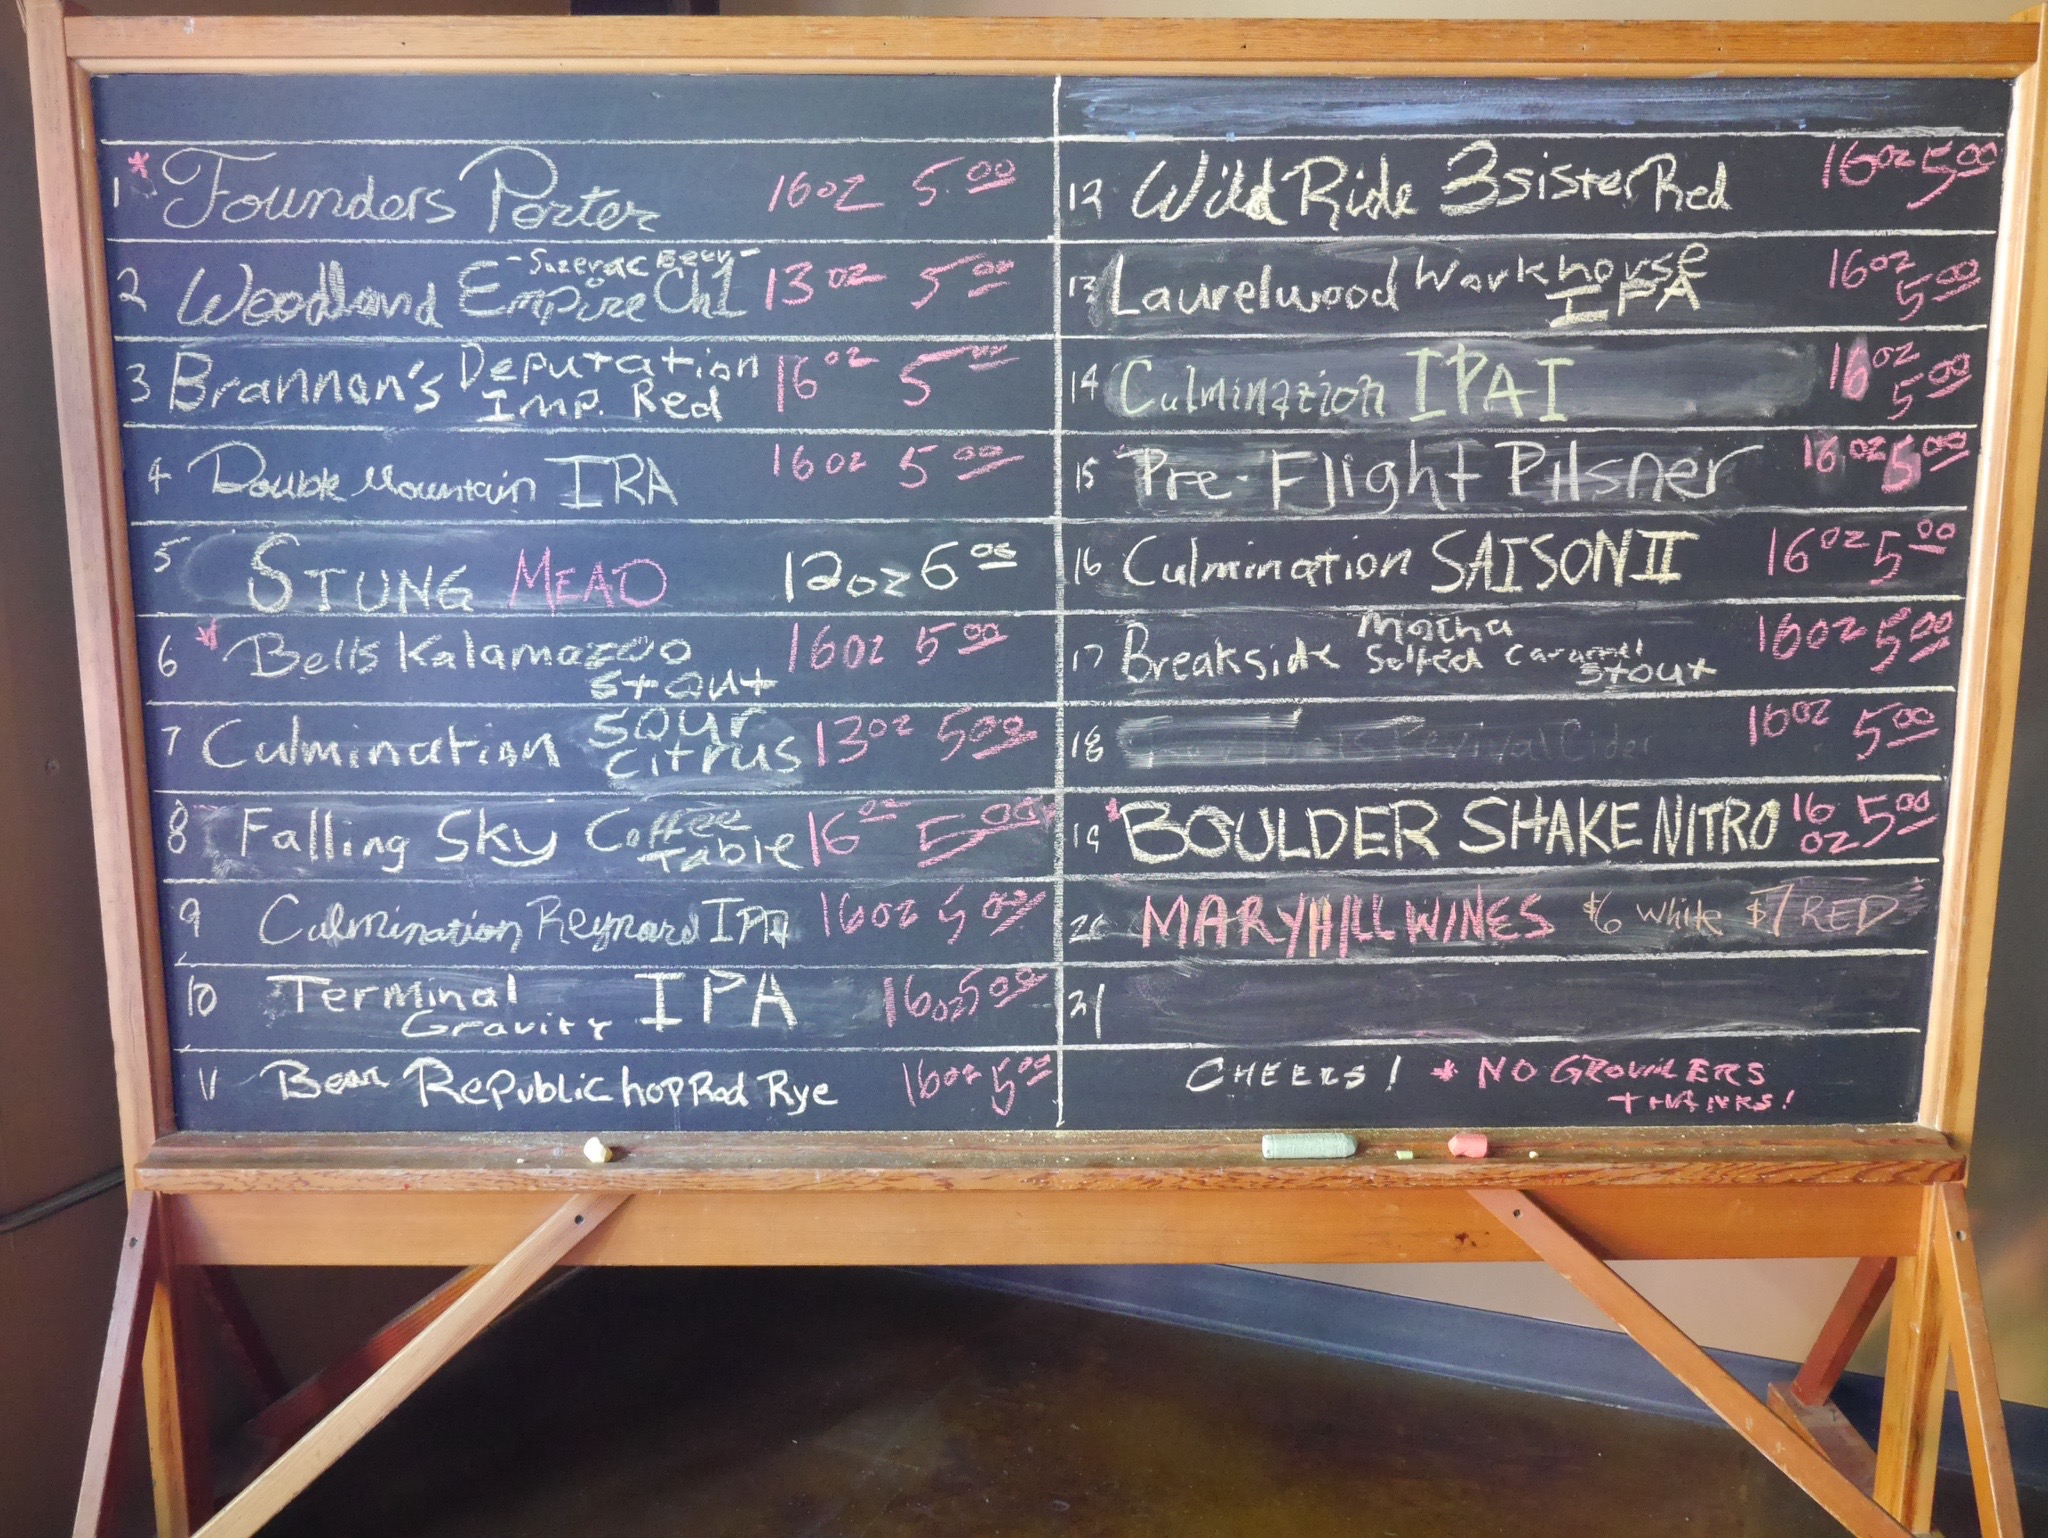 Culmination Brewing Beer Menu Board 6-9-15